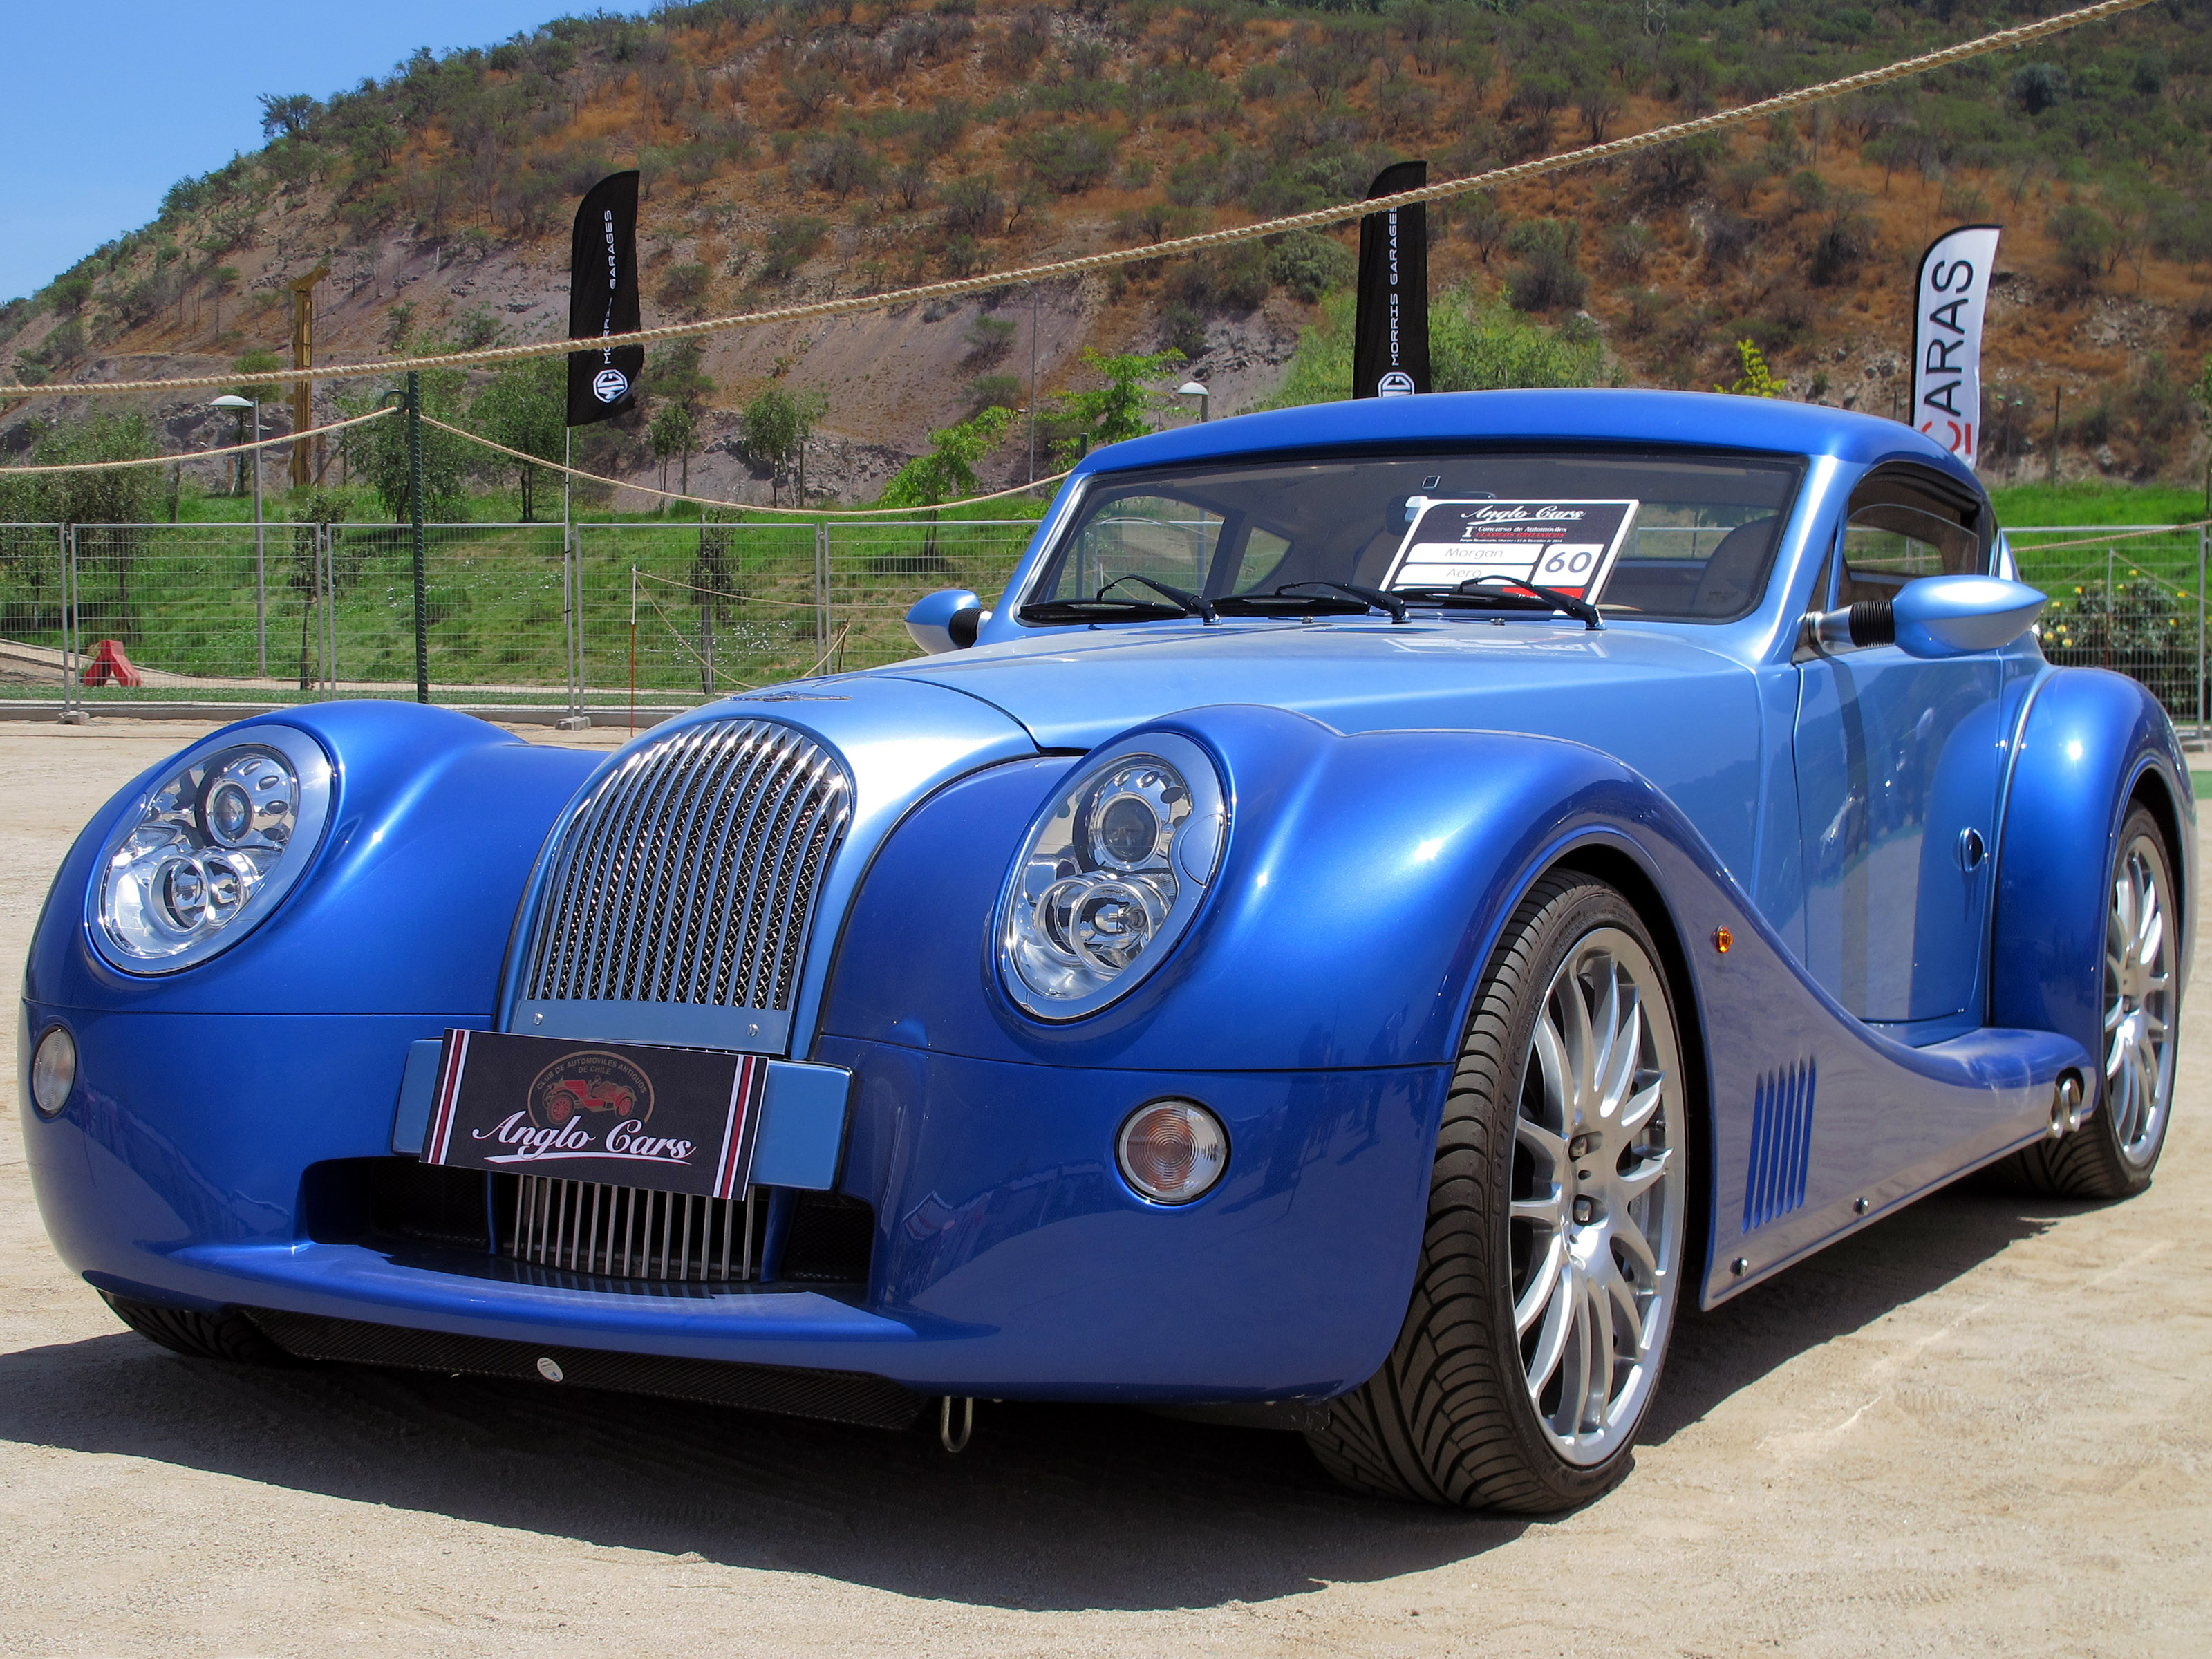 File:Morgan Aero Coupe 2013 (16318232010).jpg - Wikimedia Commons